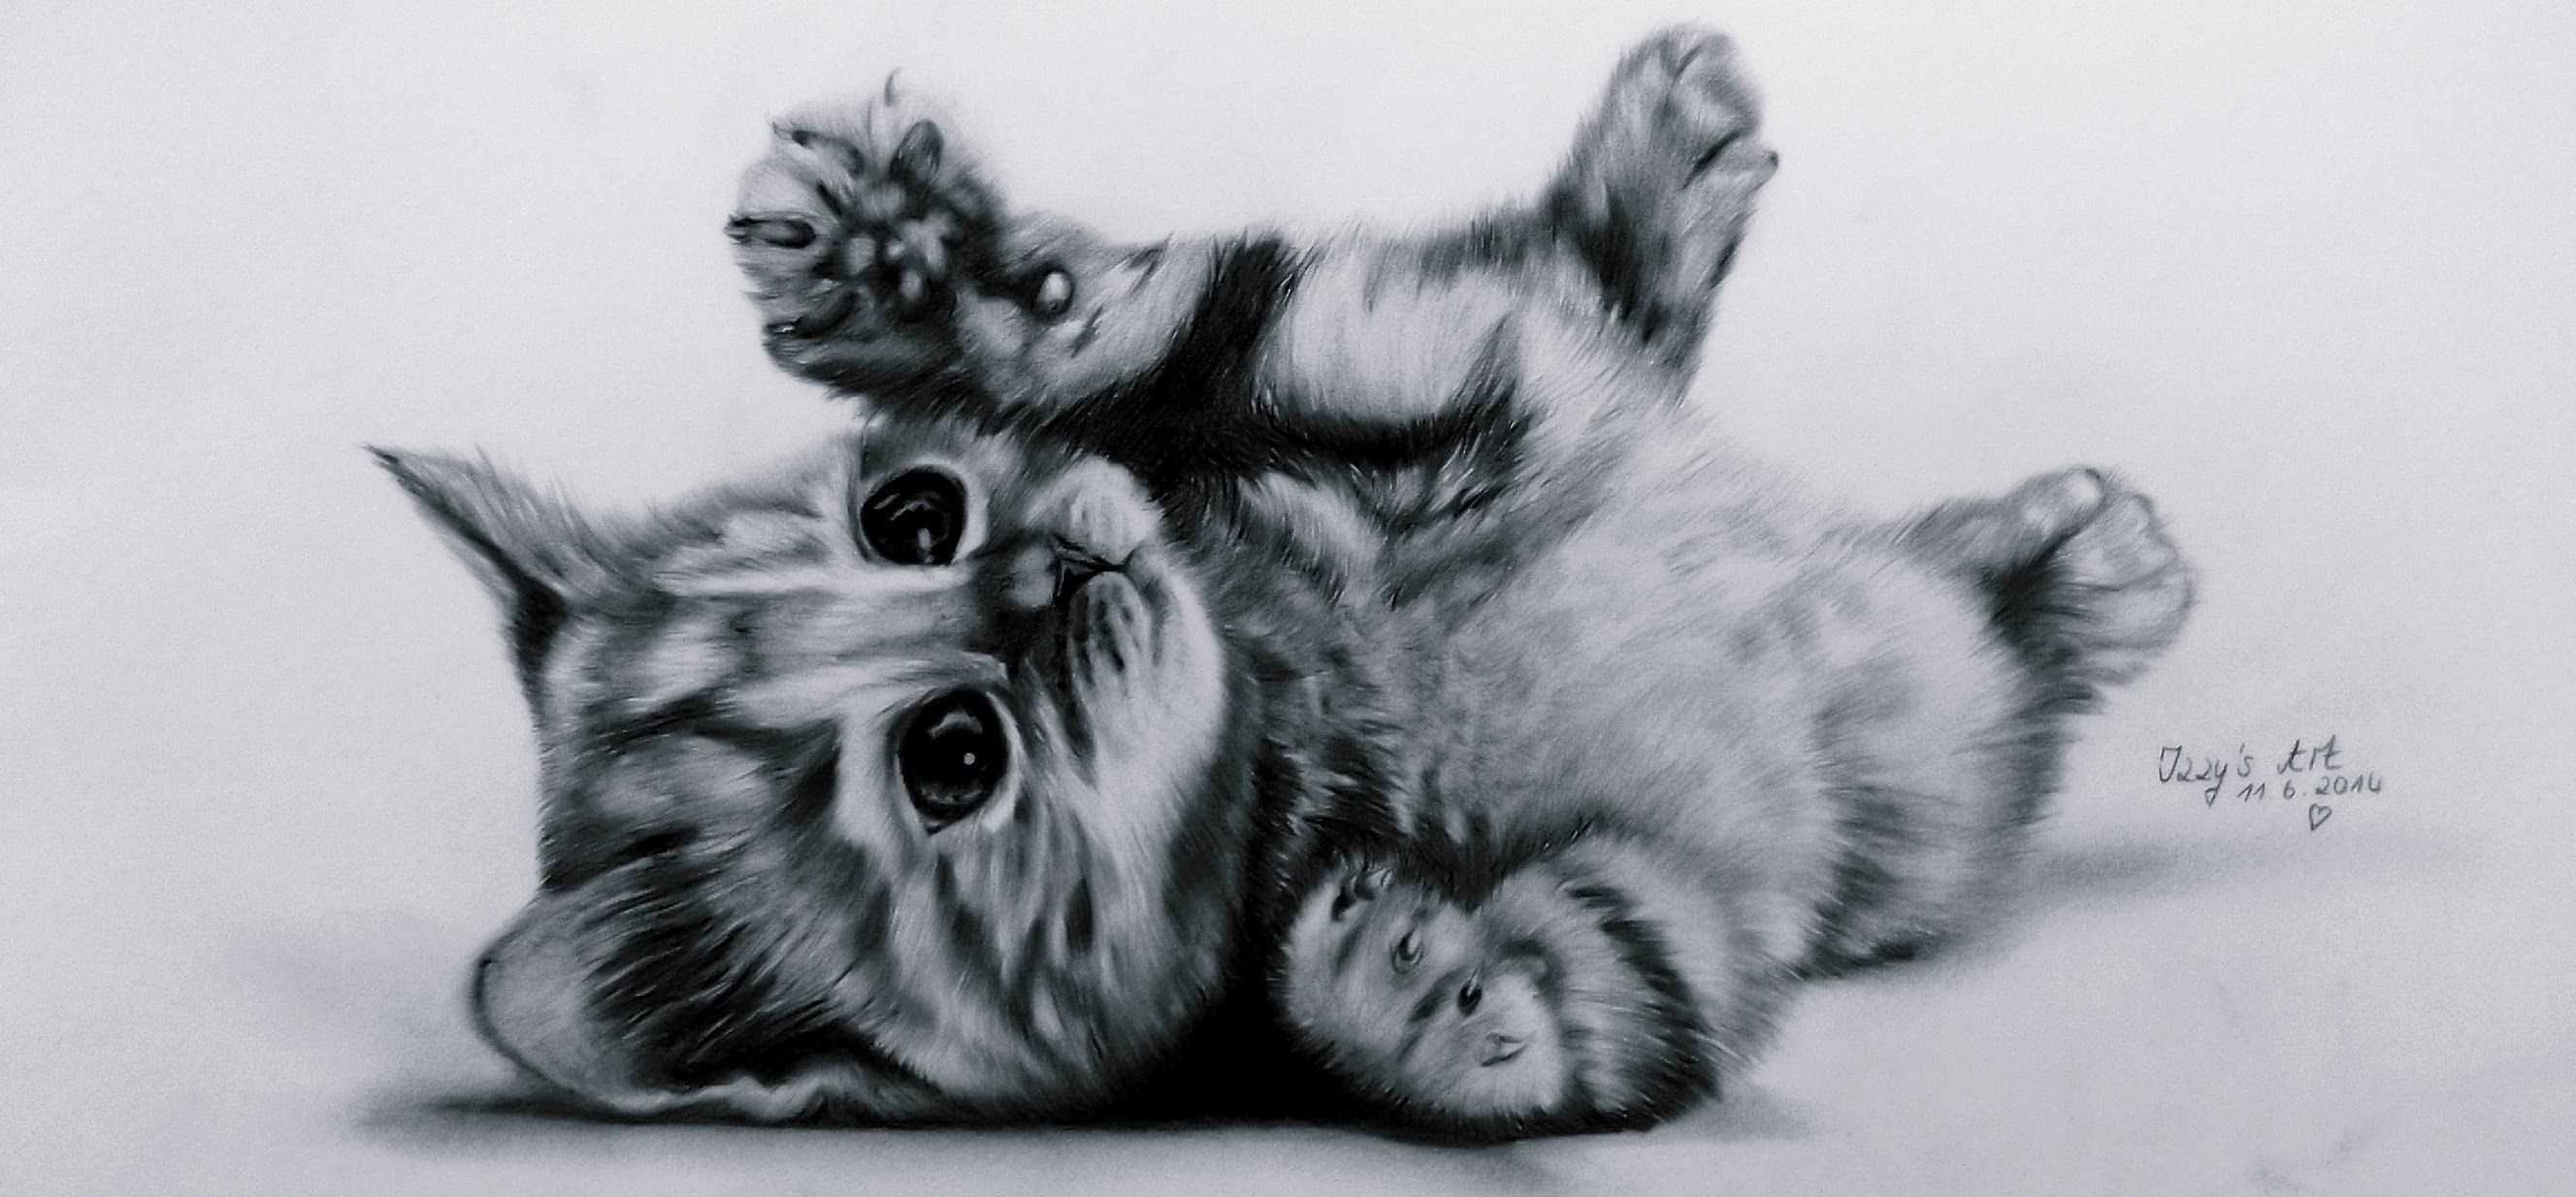 Maxresdefault Jpg 2655 1234 Kitten Drawing Images Of Cute Cats Cat Drawing